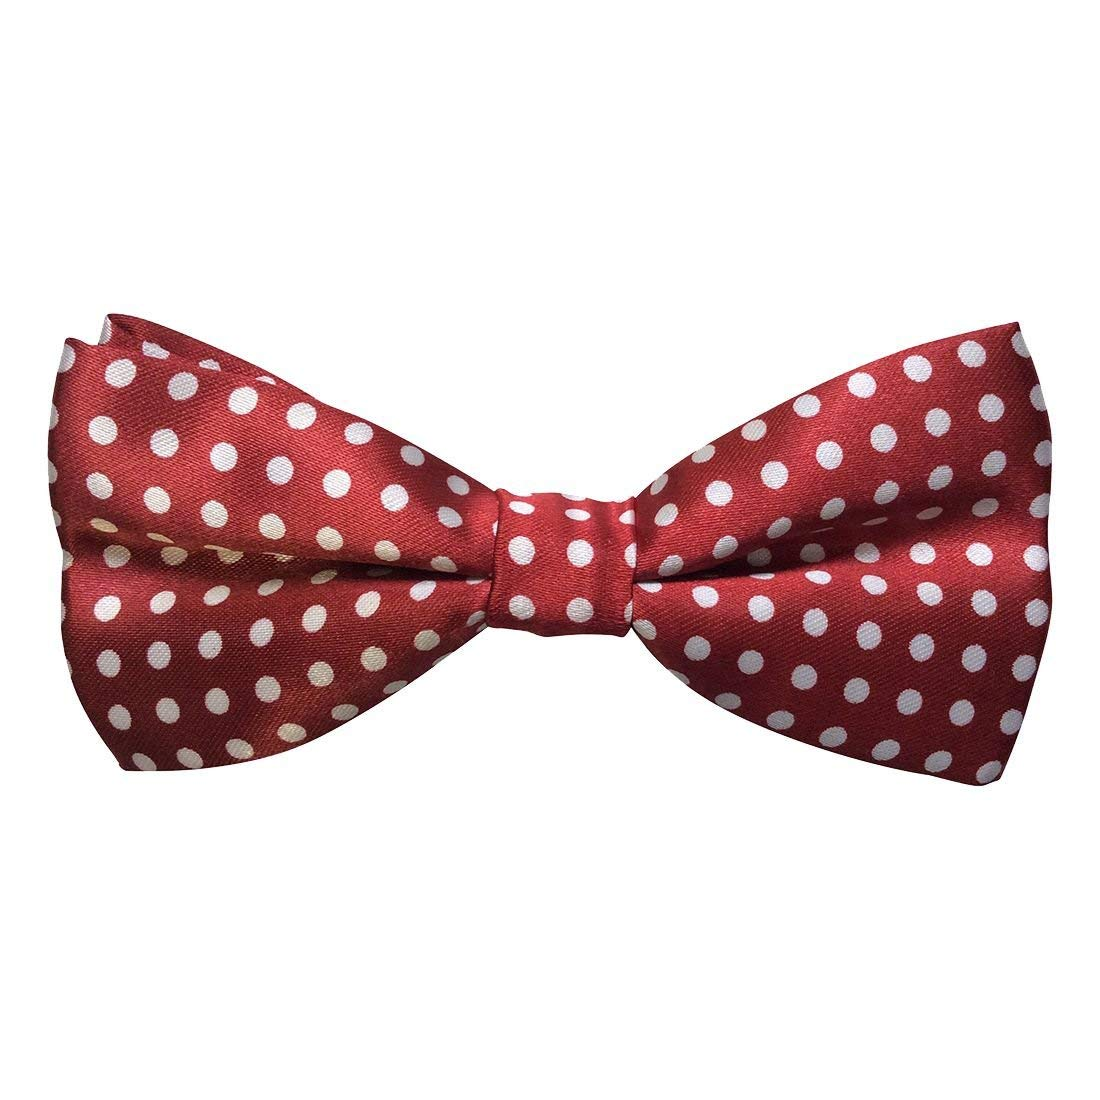 1d77b64f71c0 Get Quotations · SODIAL(R) Mens Satin Spotty Burgundy & White Luxury  adjustable Bow Tie